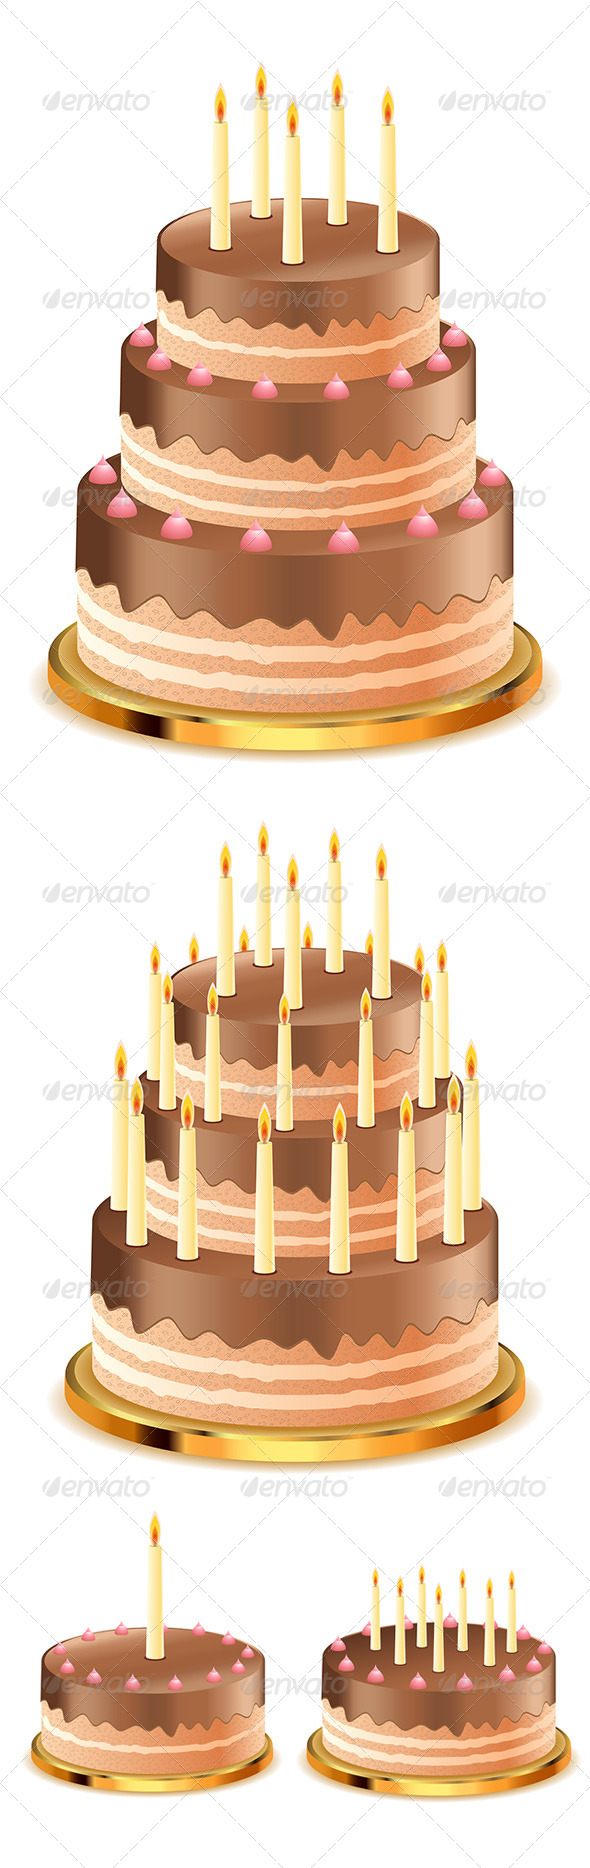 GraphicRiver Chocolate Cake with Candles 8163993